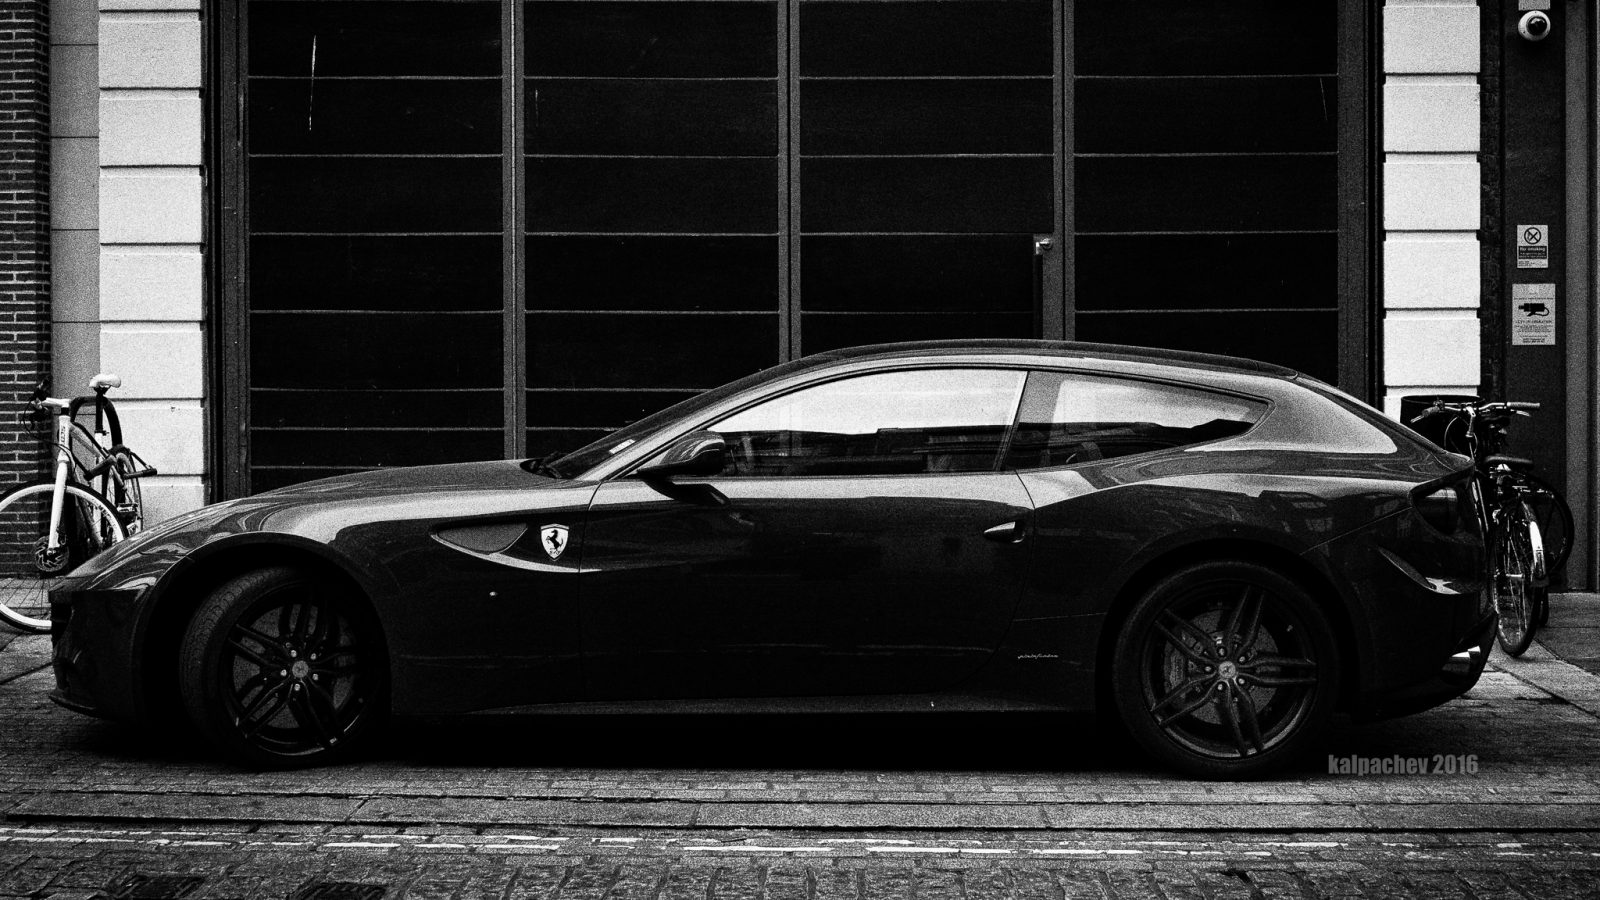 Ferrari in Soho, London